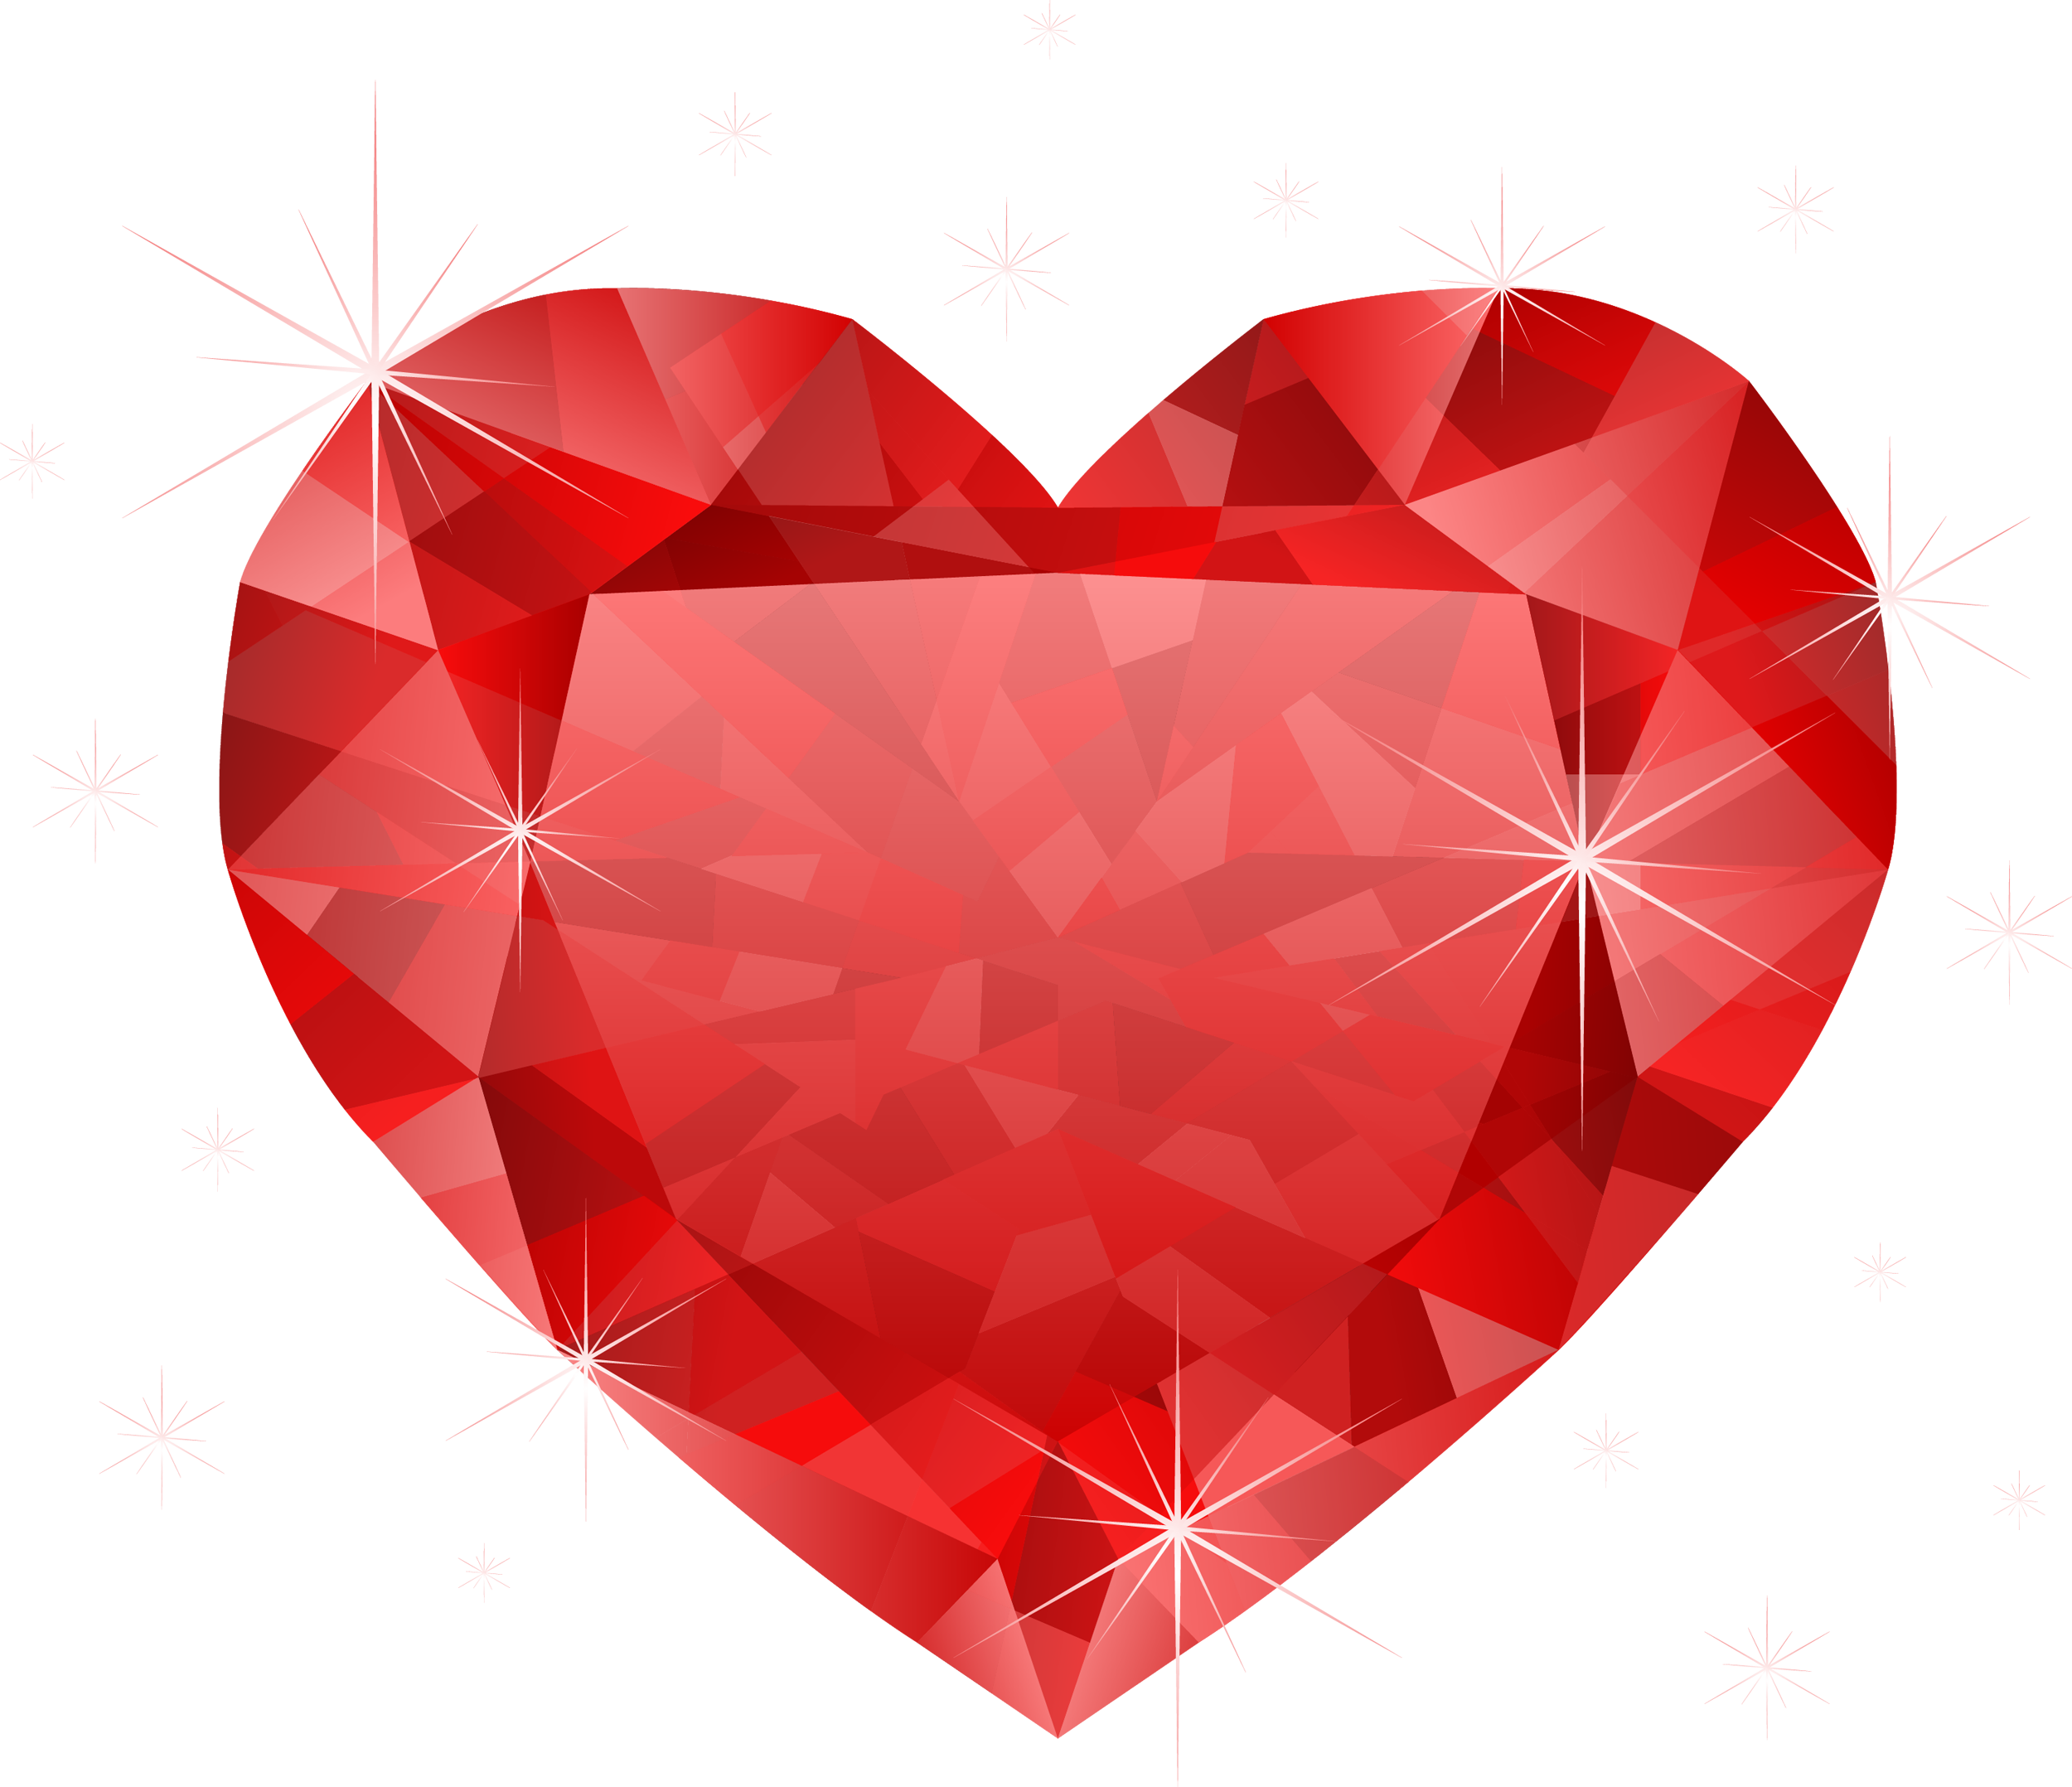 Transparent heart png. Large diamond red clipart